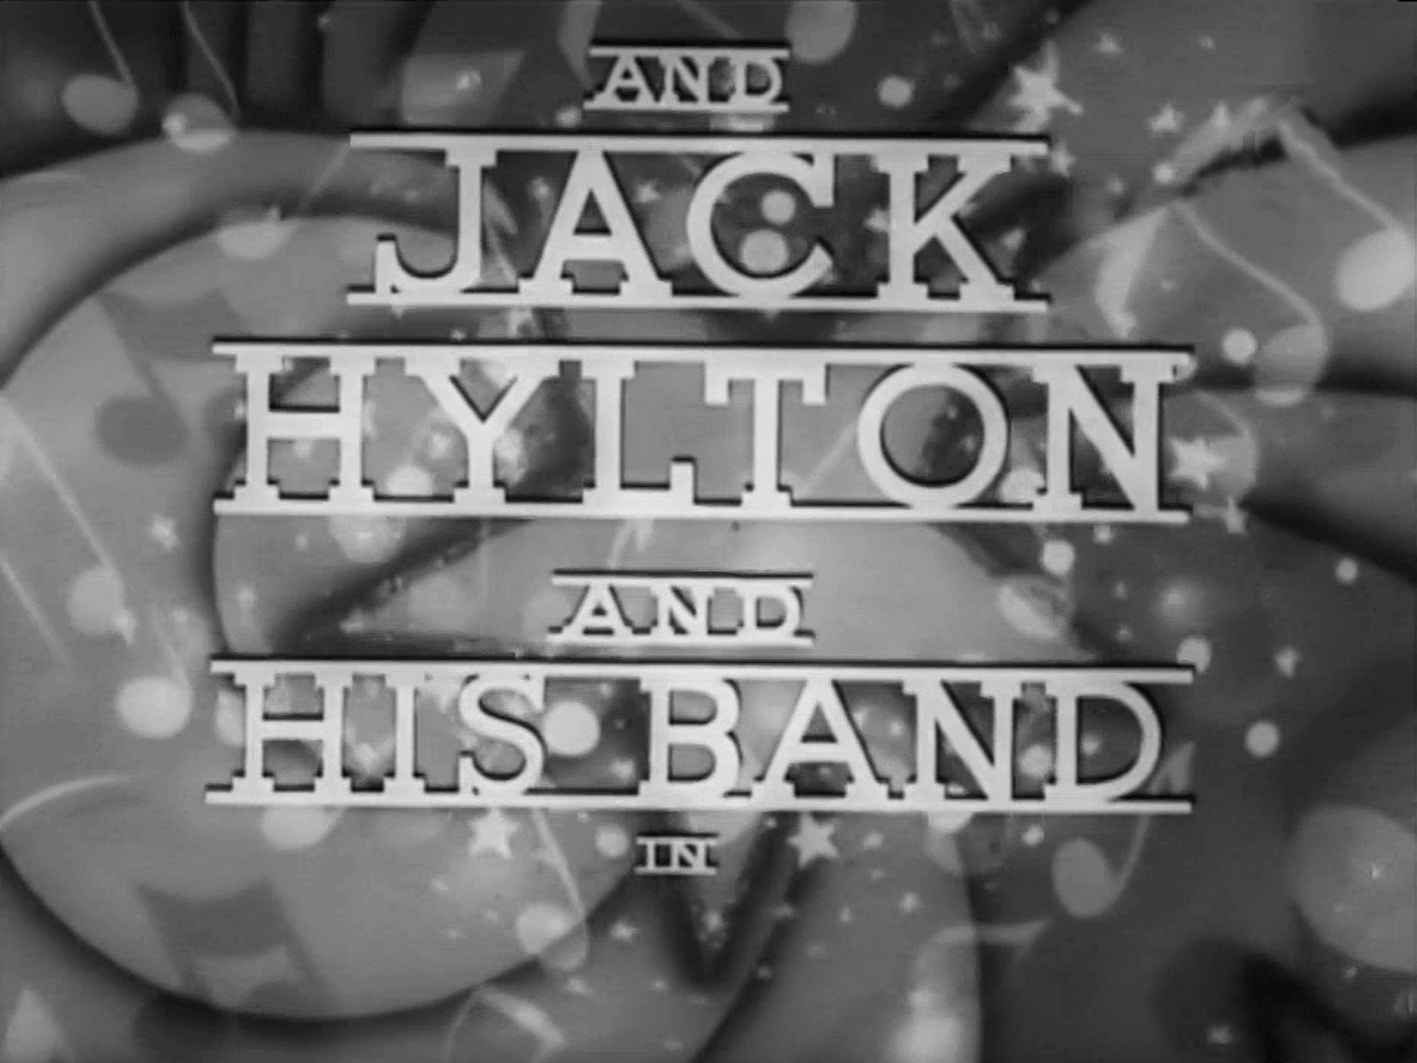 Main title from Band Waggon (1940) (5). And Jack Hylton and His Band in